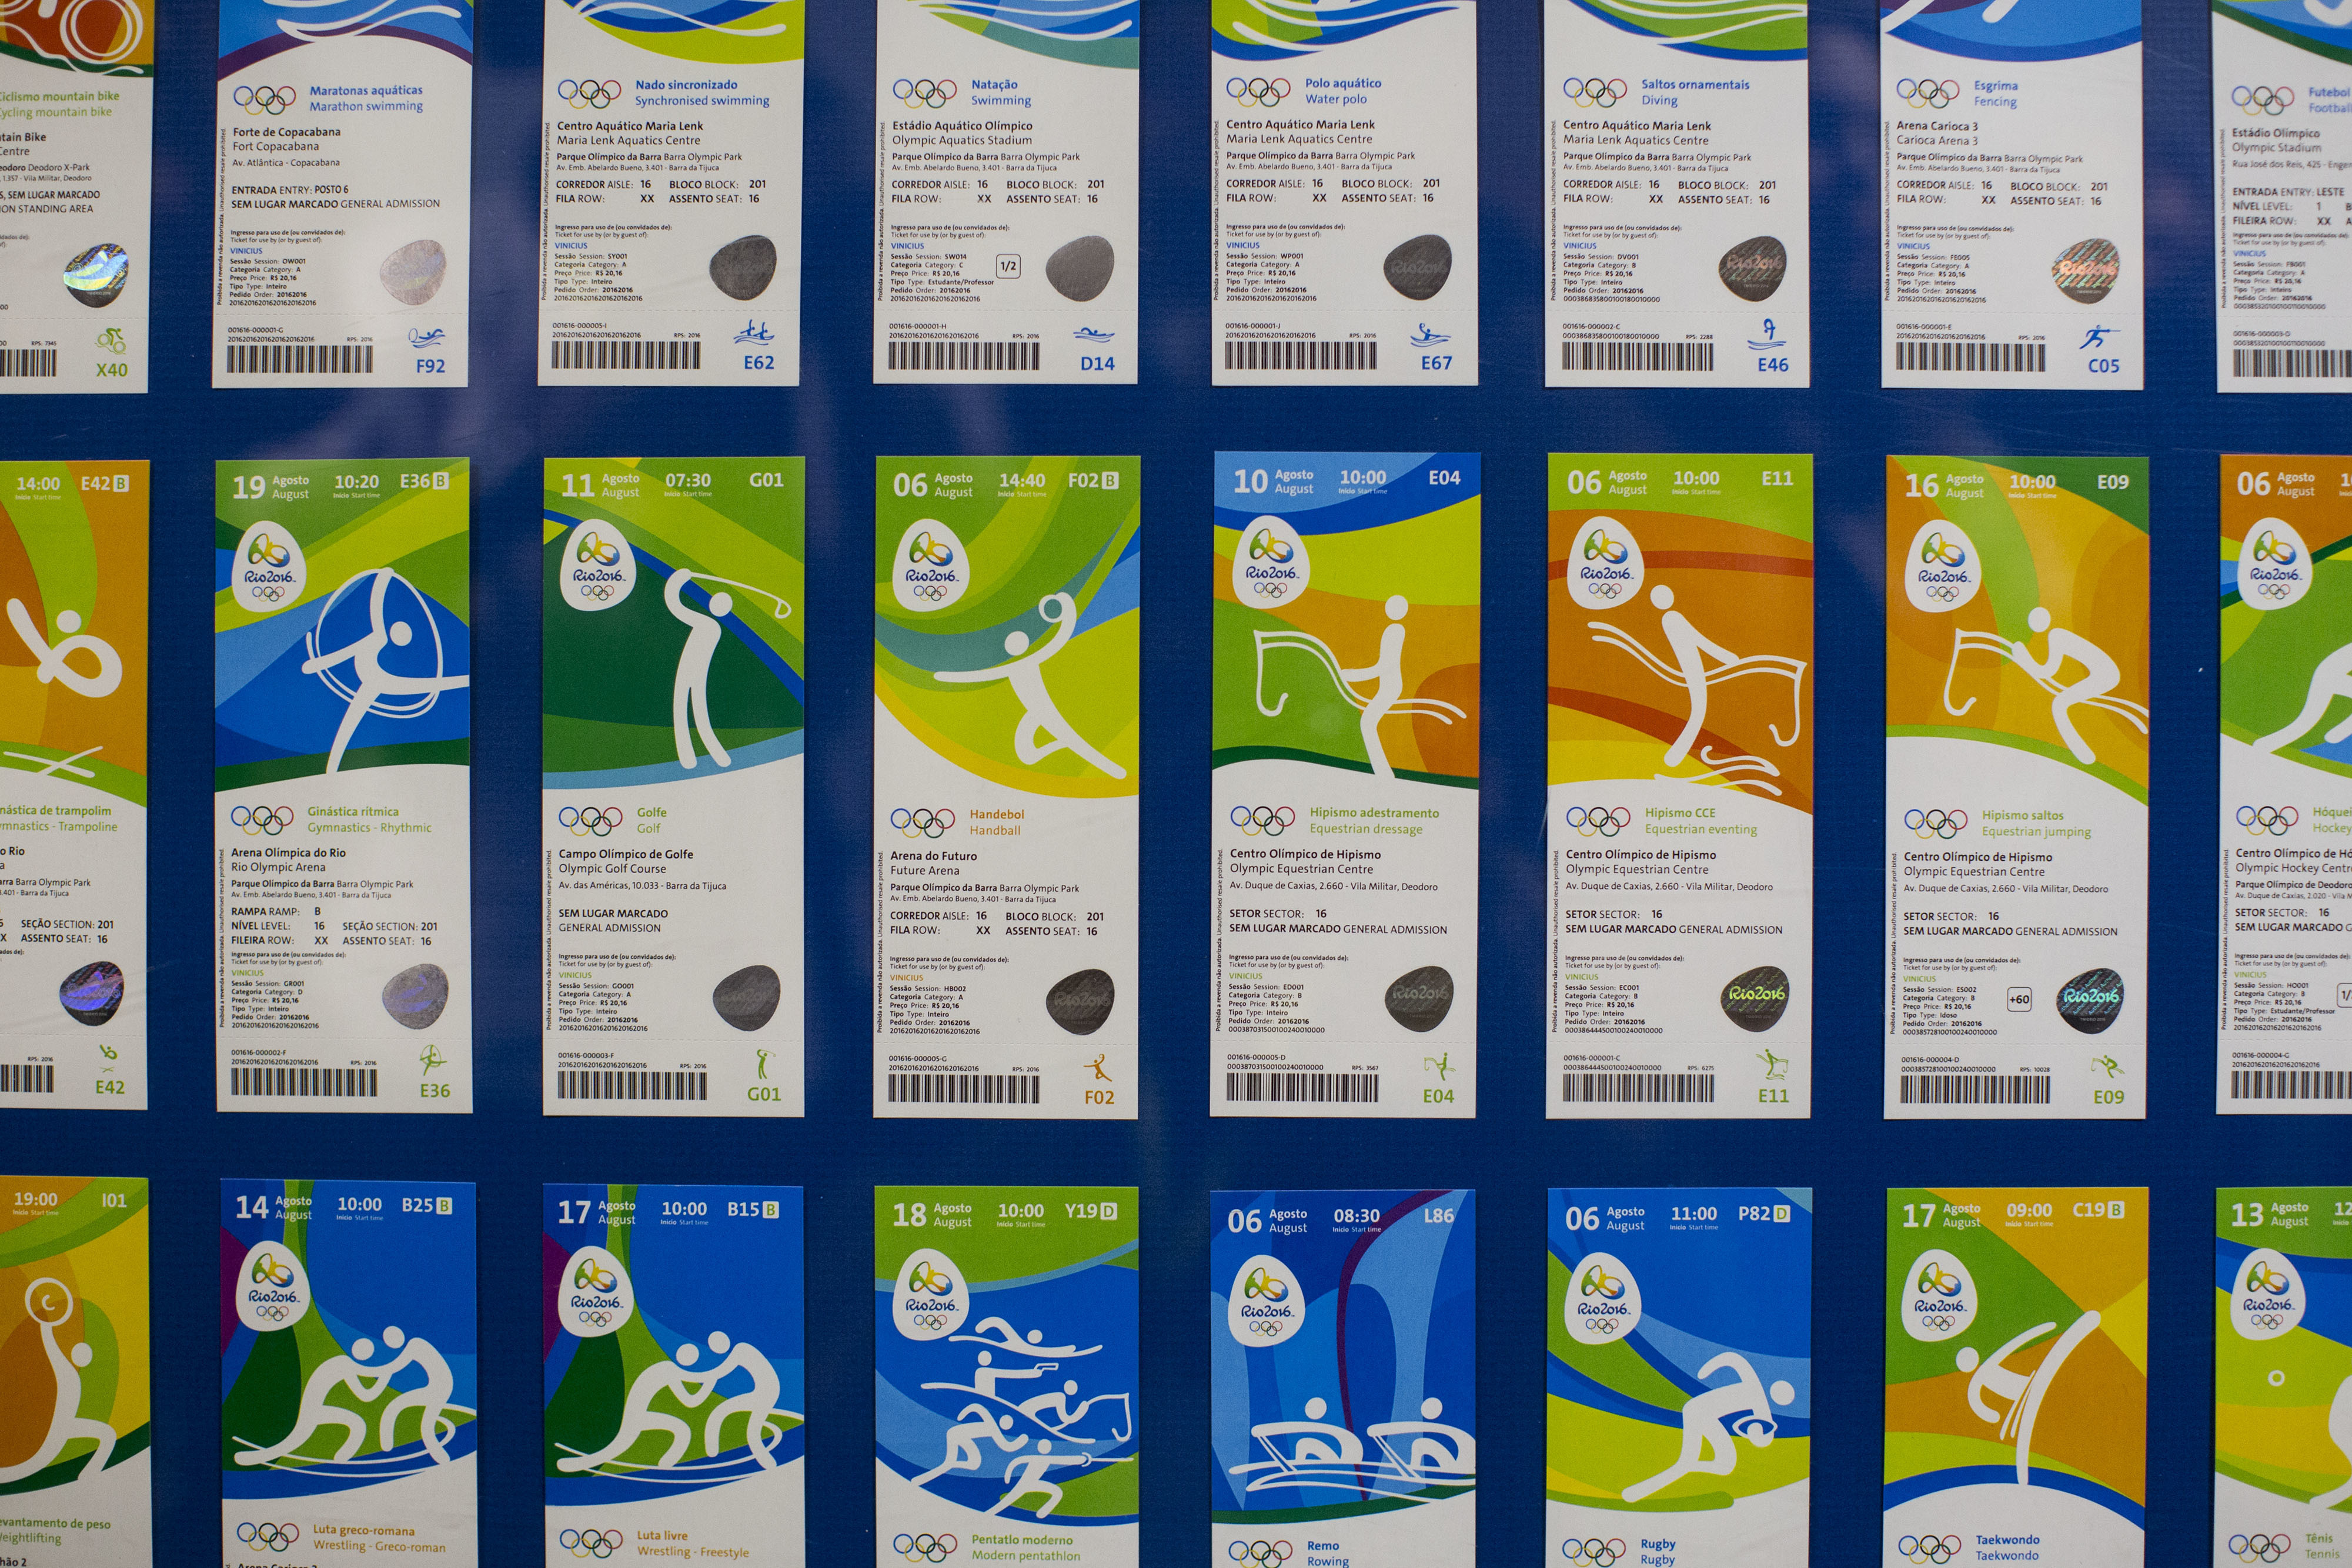 In this May 20, 2016 file photo, Olympic tickets are displayed during an event at the Rio 2016 headquarters in Rio de Janeiro, Brazil. Non-Brazilians who bought Olympic tickets early may be regretting it, having paid higher prices and add-on fees. In a la